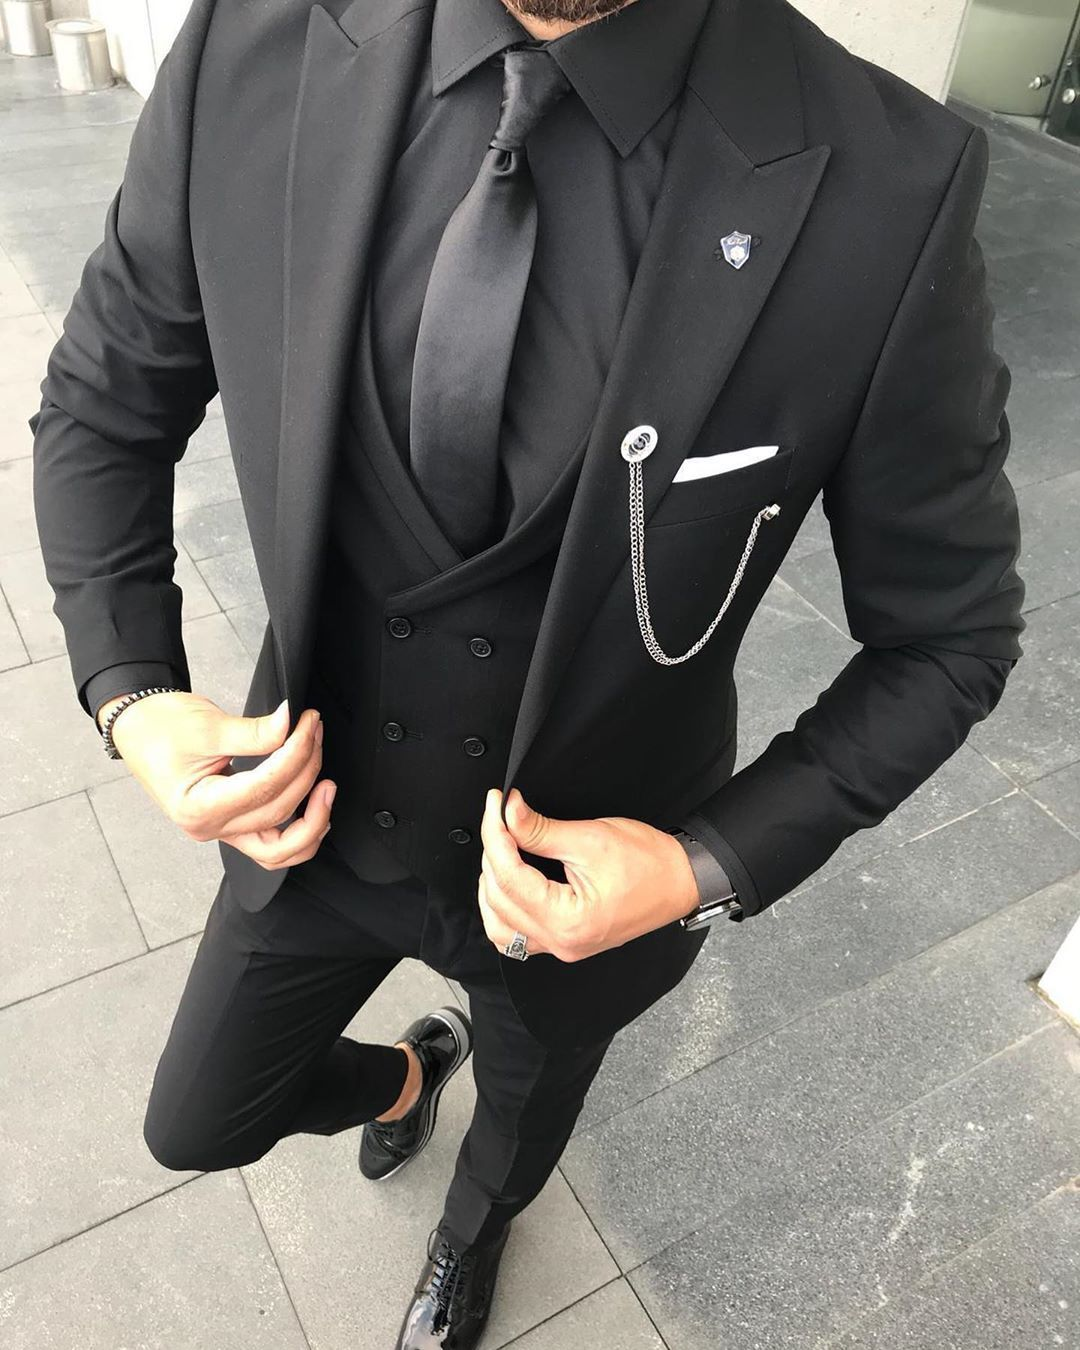 Visit Our Website For The Latest Men S Fashion Trends Products And Tips Mensfashion Mensapparel Fashion Suits For Men Black Suit Men Dress Suits For Men [ 1350 x 1080 Pixel ]